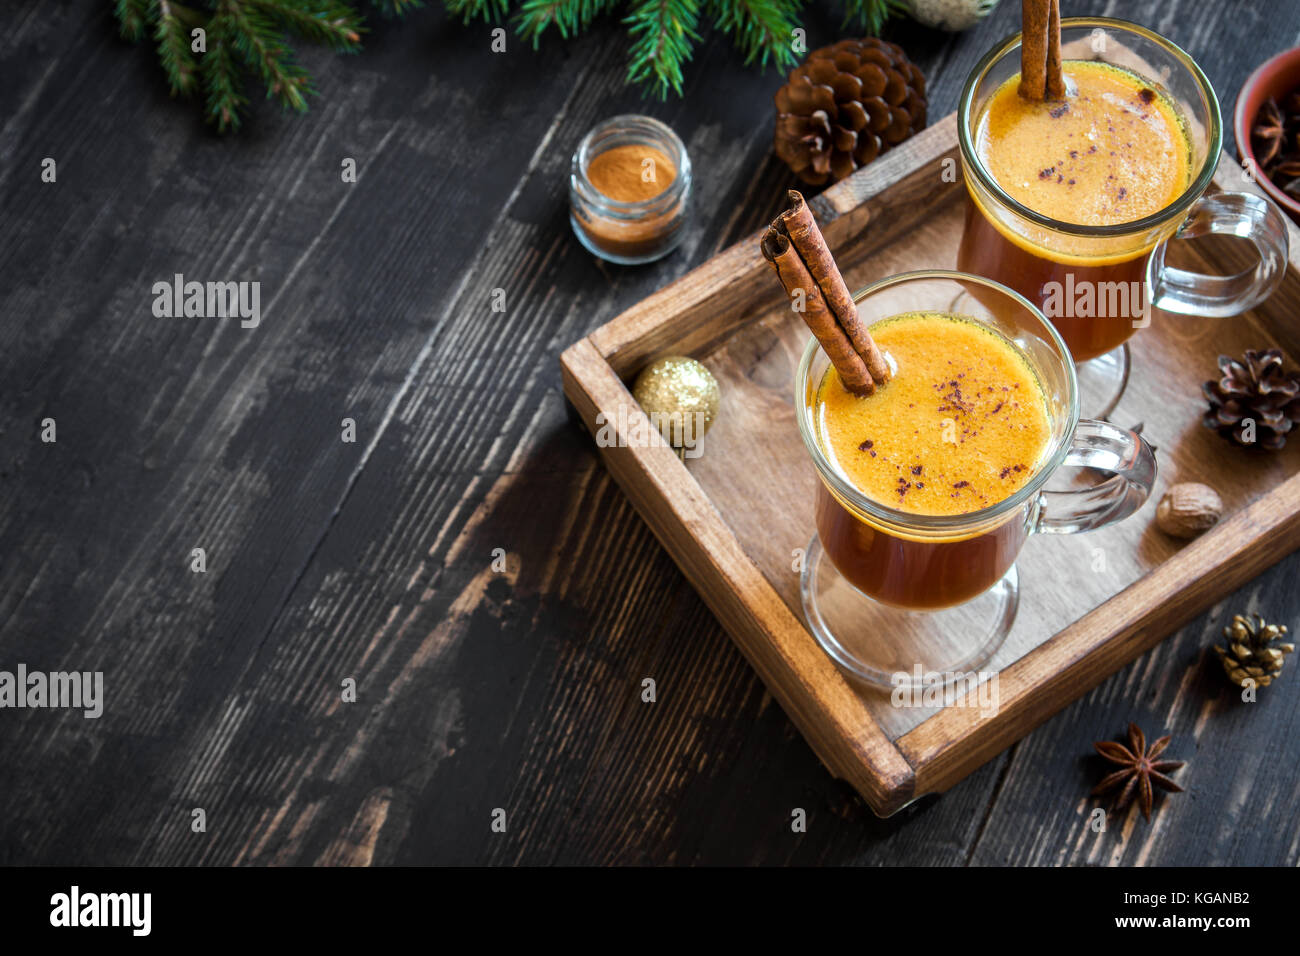 Hot buttered rum cocktail with cinnamon for Christmas and winter holidays. Homemade festive hot Christmas drink. - Stock Image